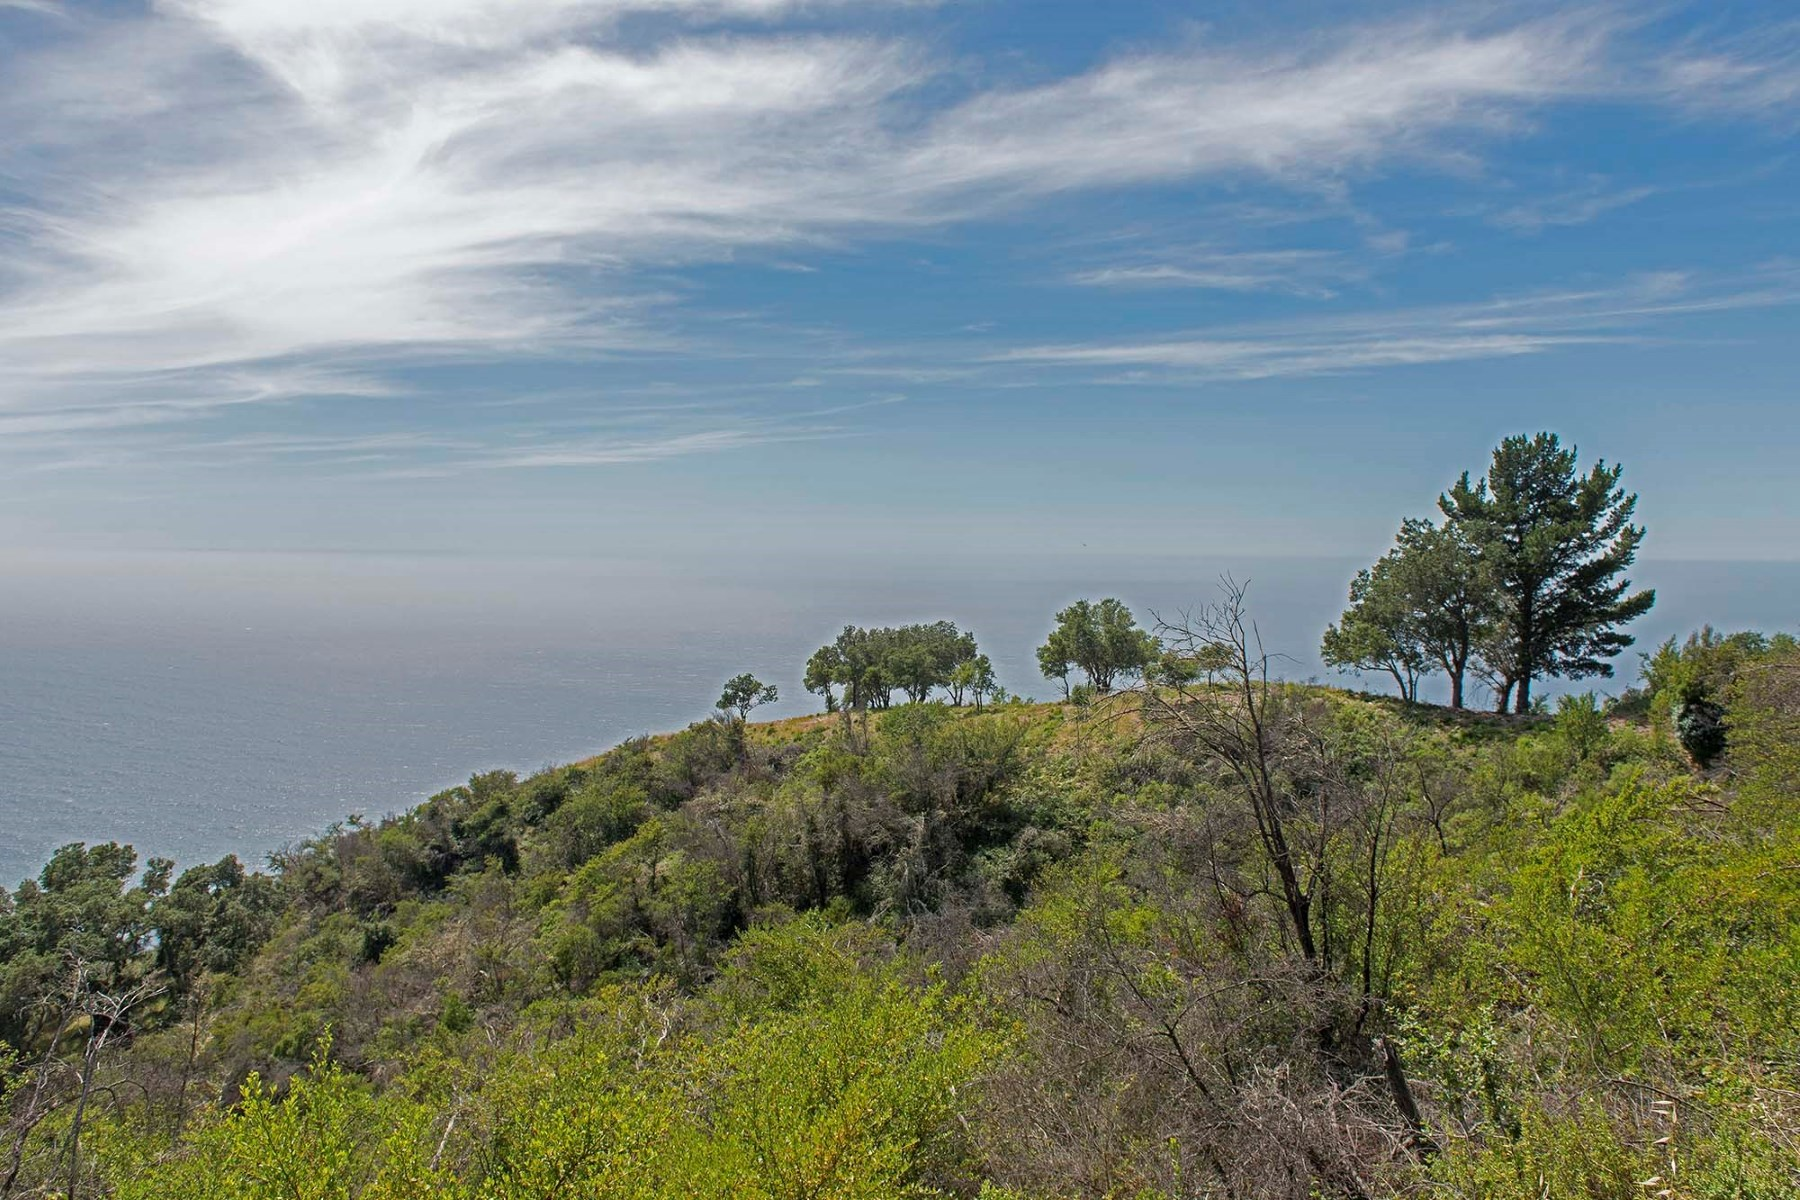 Terreno por un Venta en Panoramic Ocean and Mountain Views Highway 1 At Santa Lucia Ranch, Big Sur, California, 93920 Estados Unidos